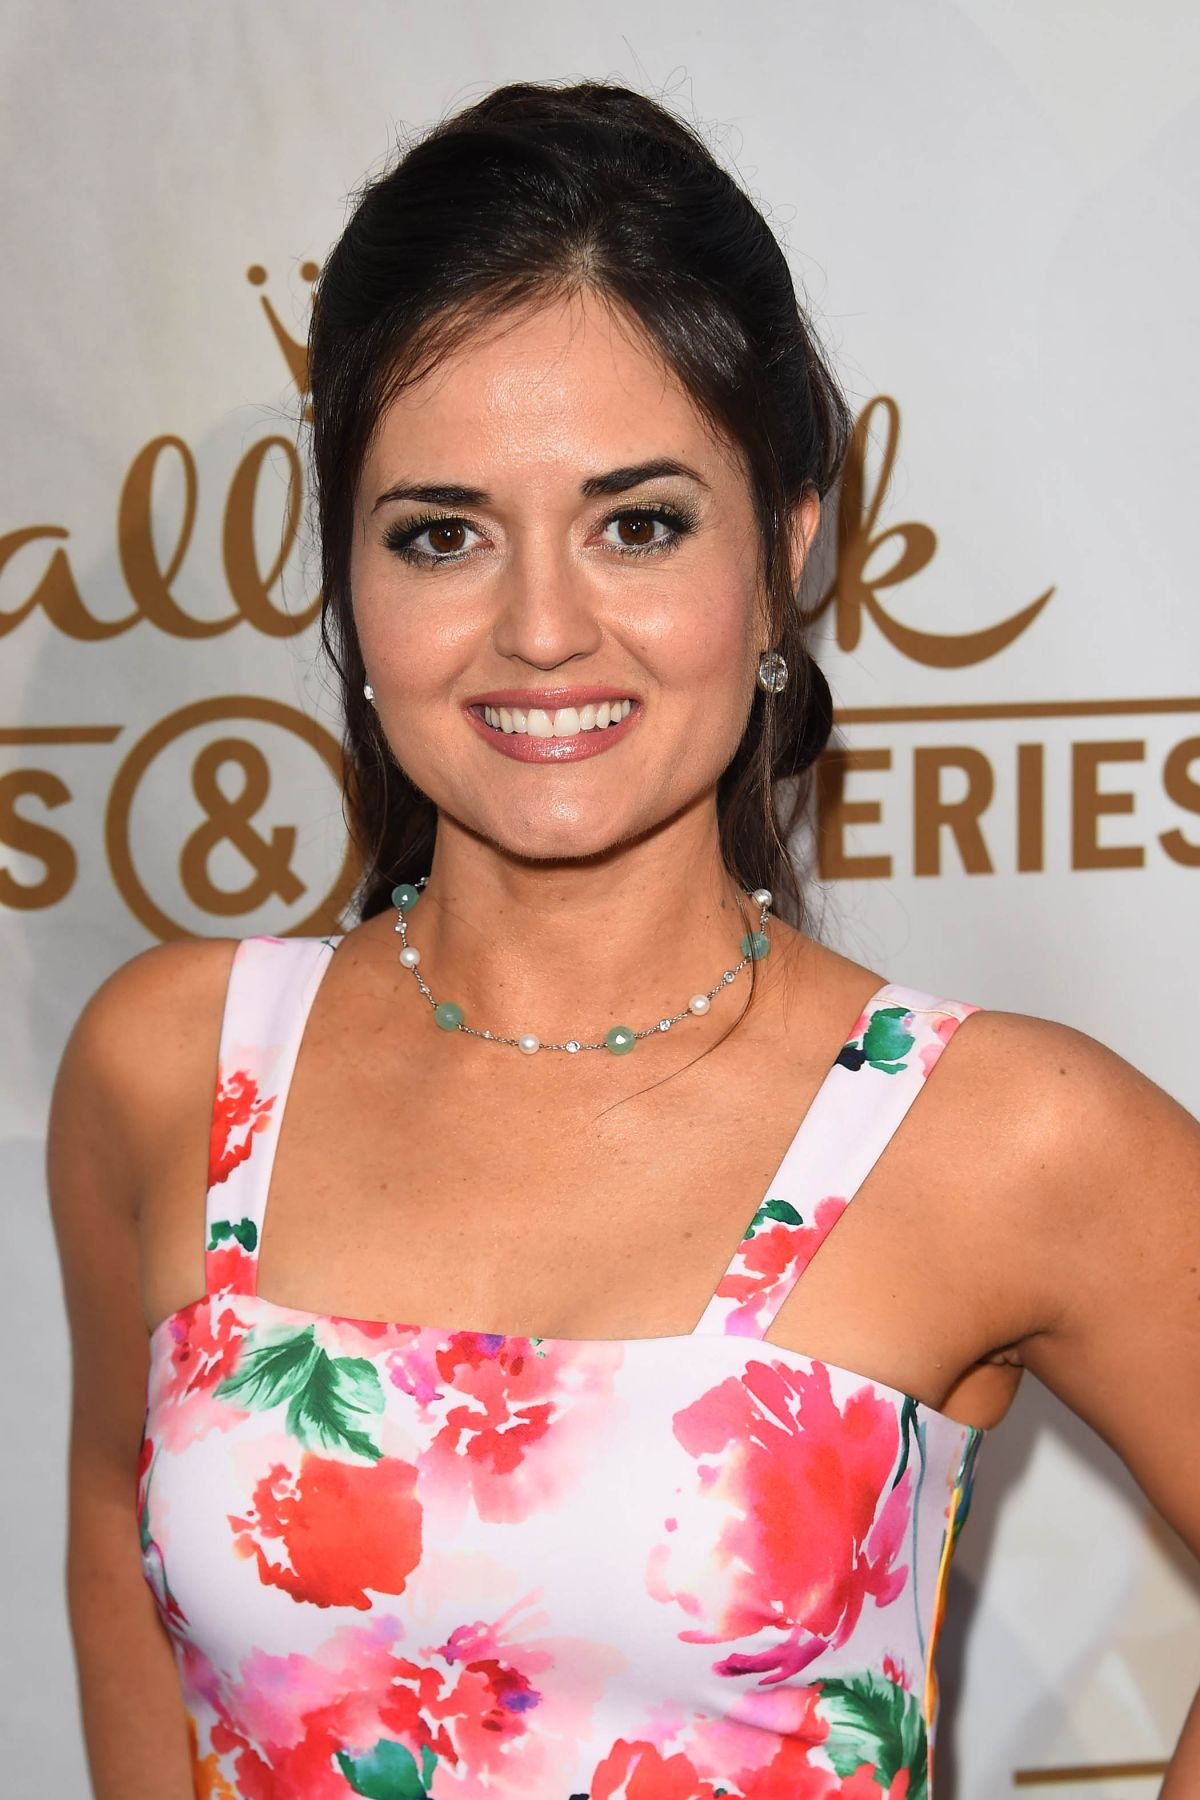 DANICA MCKELLAR at Hallmark Event at TCA Summer Tour in Los Angeles 07/27/2017